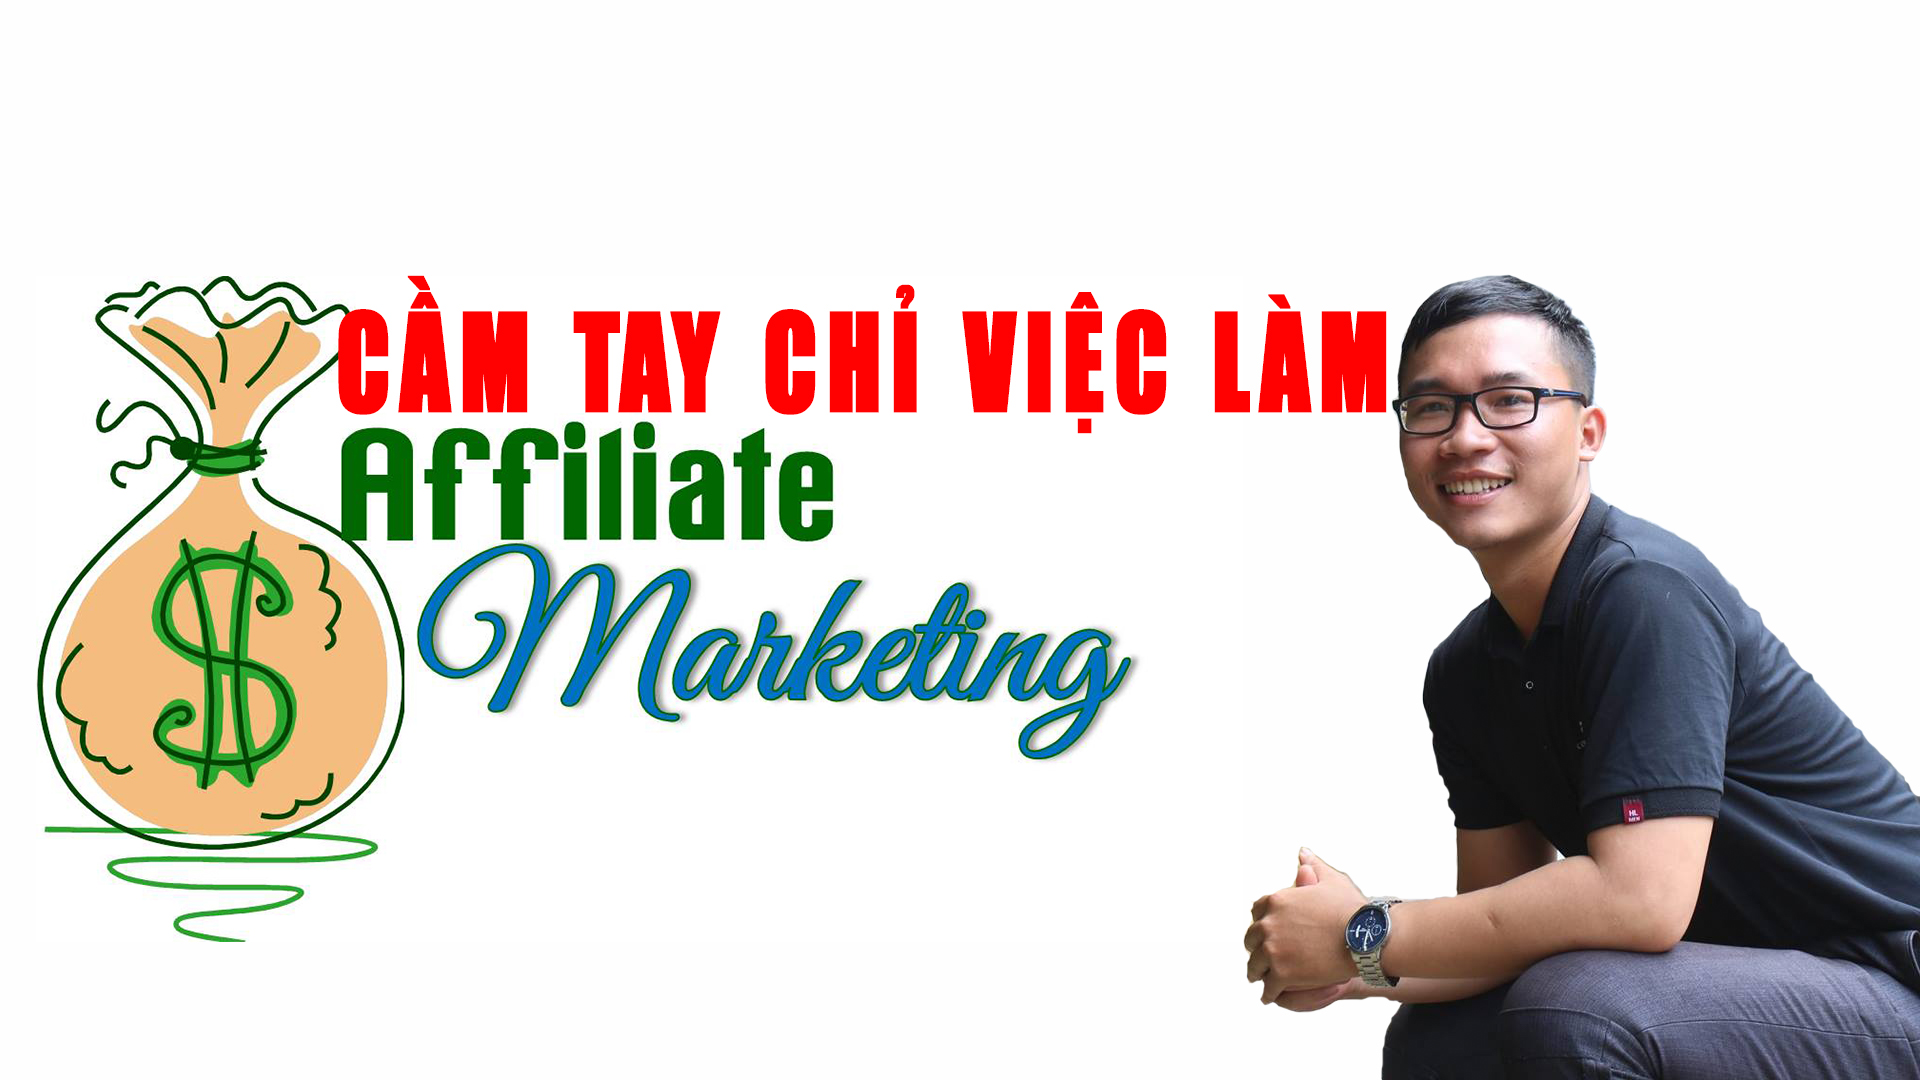 Cam-tay-chi-viec-lam-affiliate-marketing